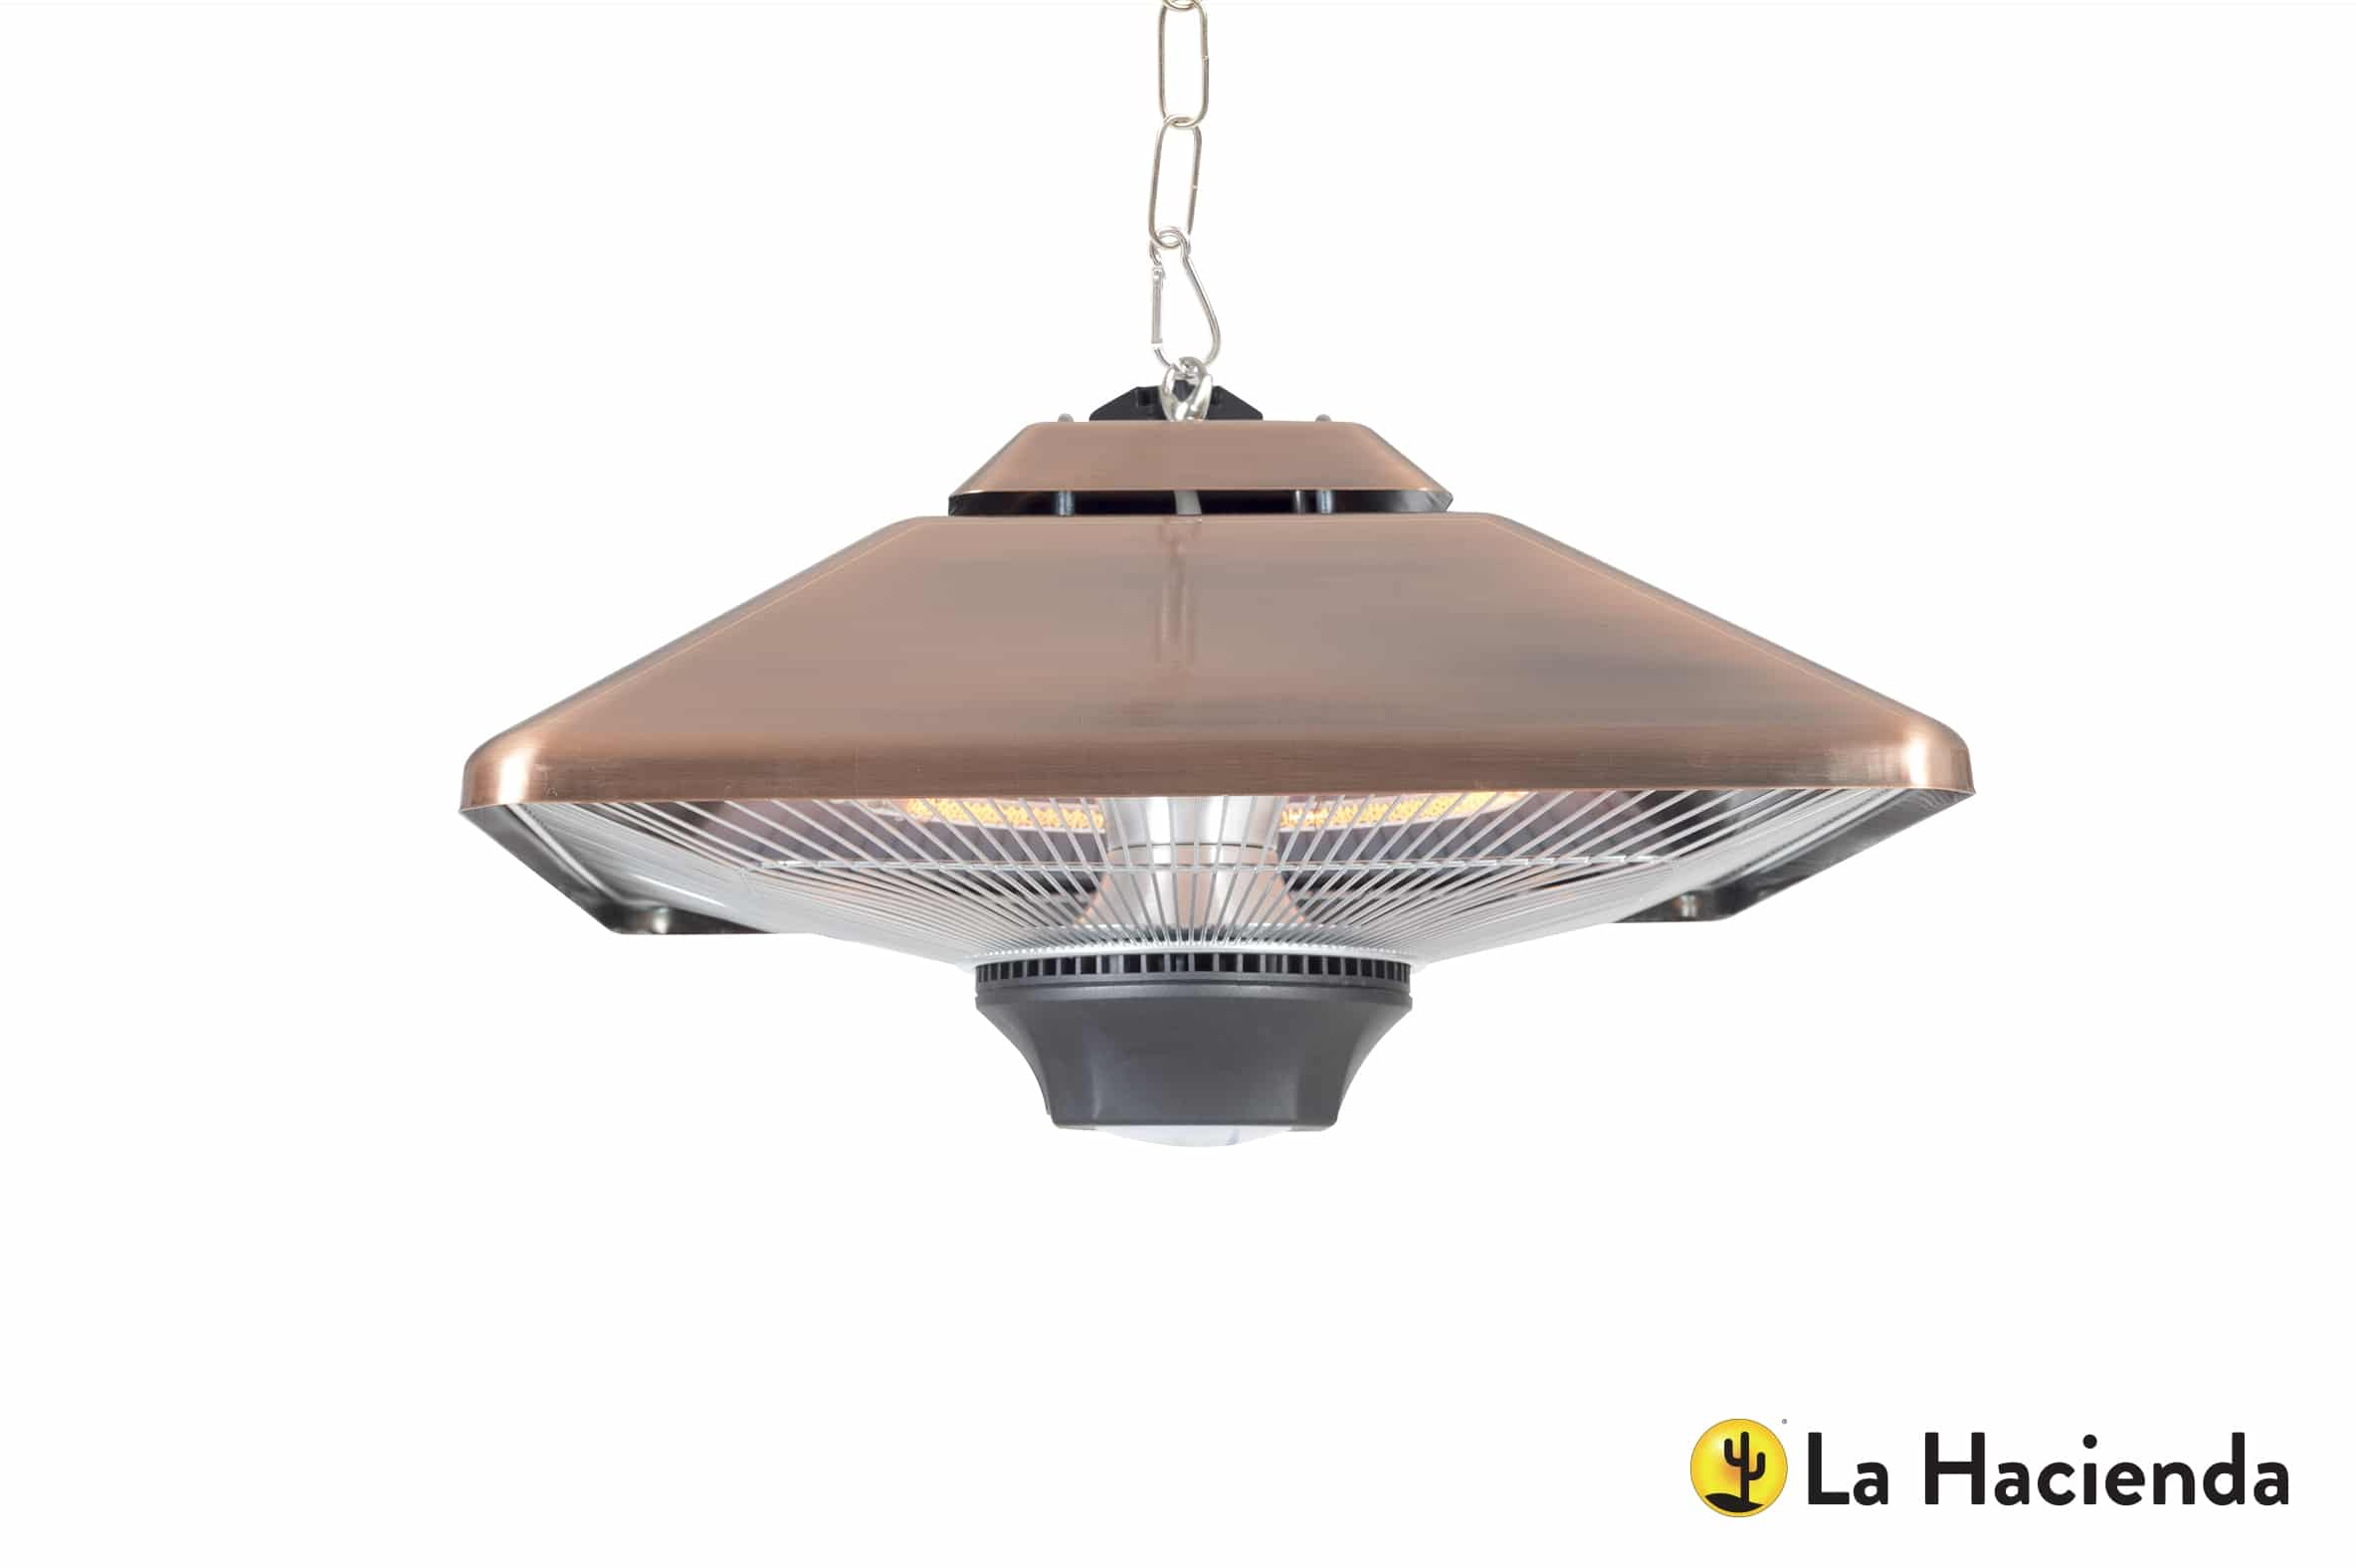 69509 copper hanging heater